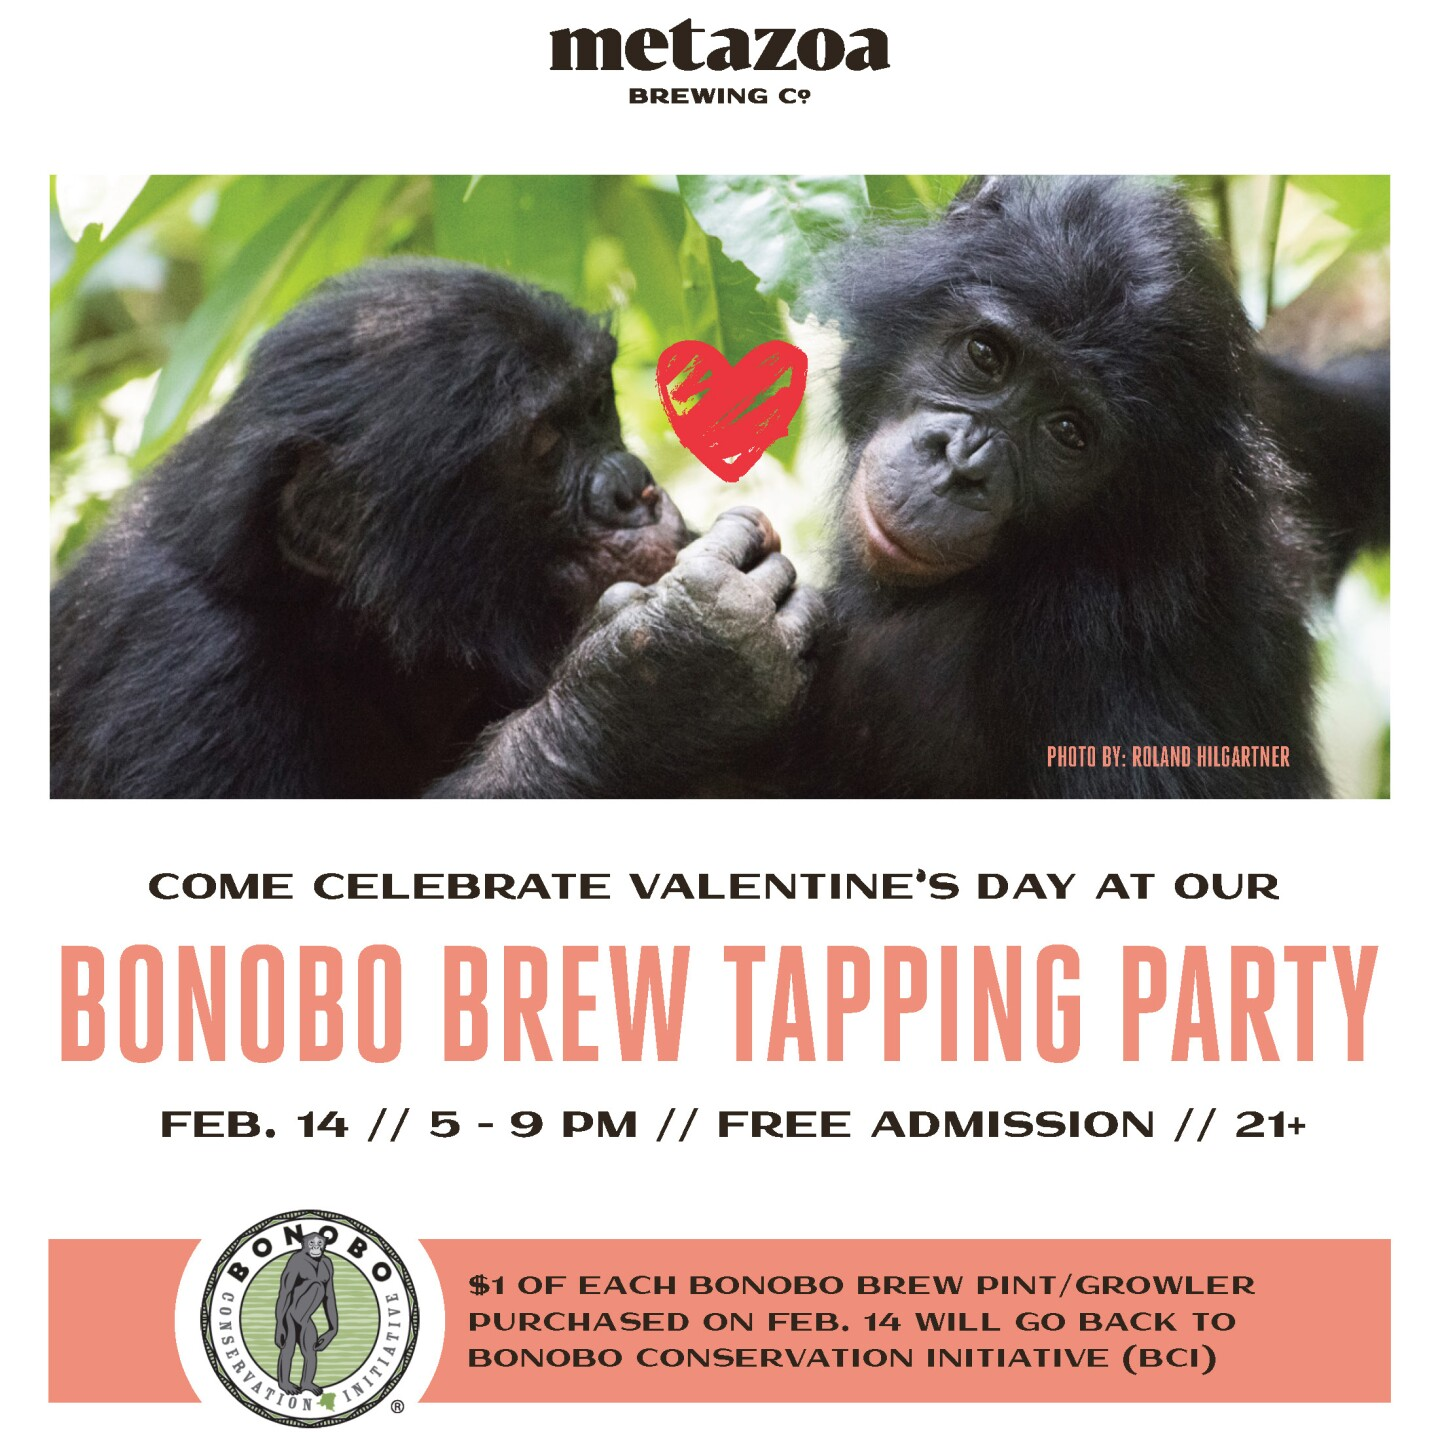 Bonobo Brew Tapping Party, Metazoa Brewing Company